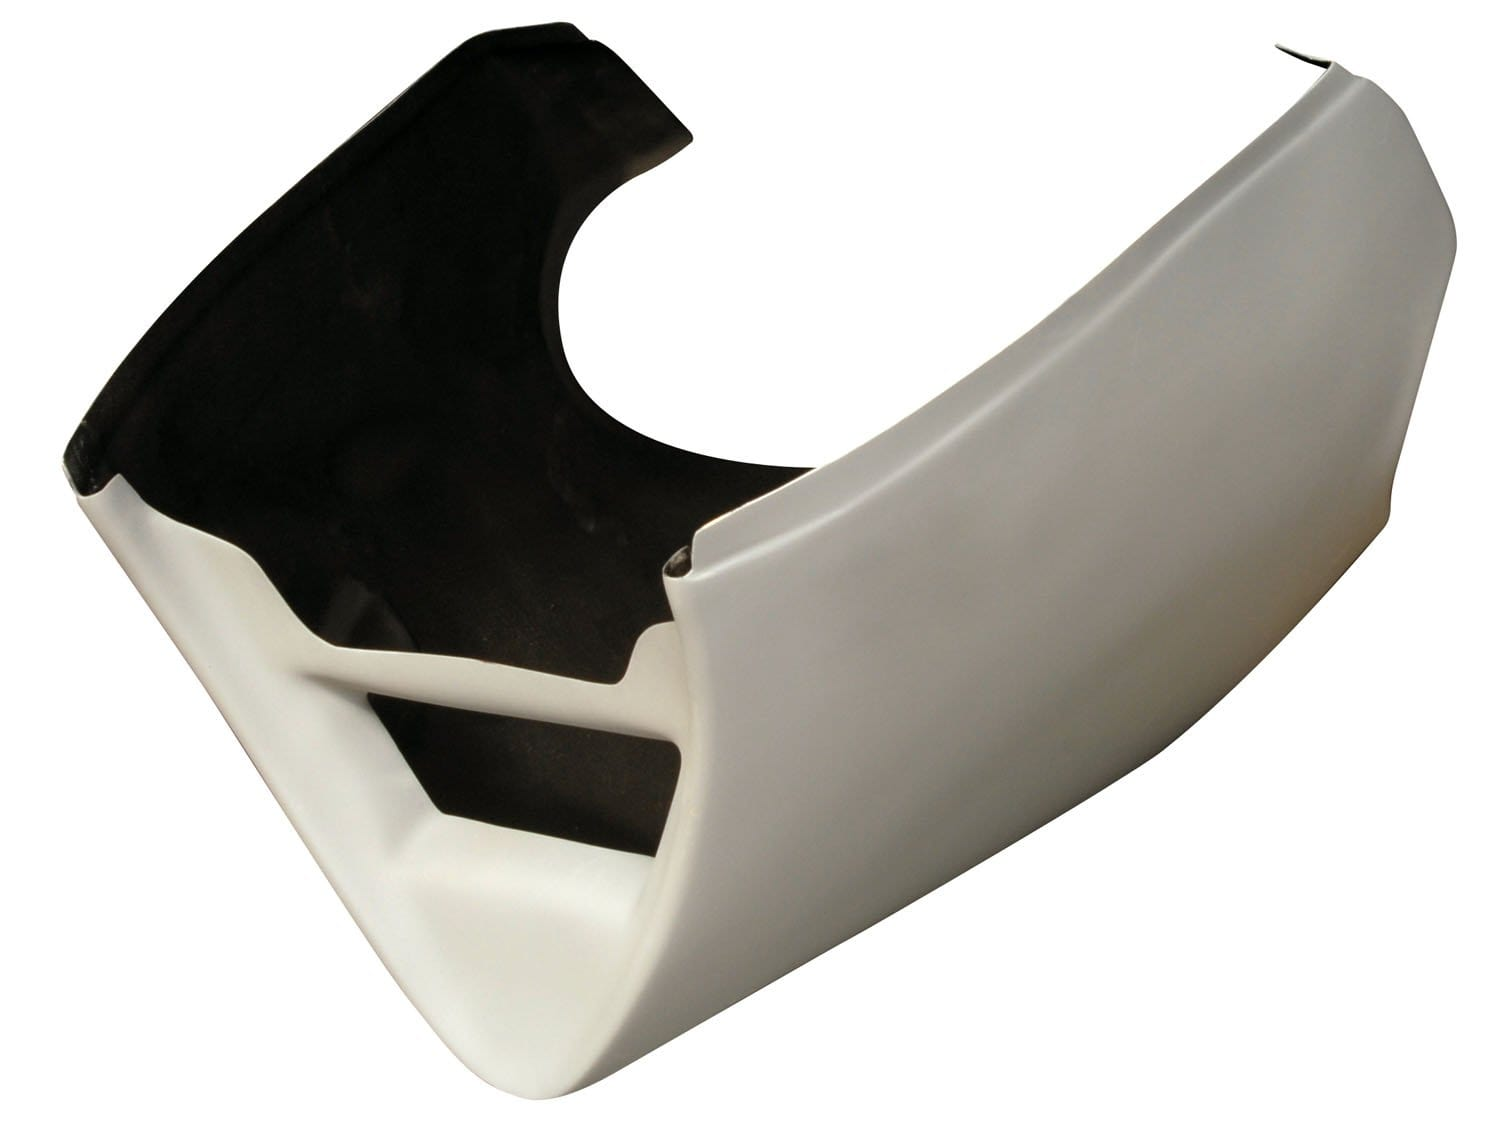 Ducati 748/916/996/998 Lower Fairing - Pro Series - Woodcraft Technologies - Motorcycle Parts